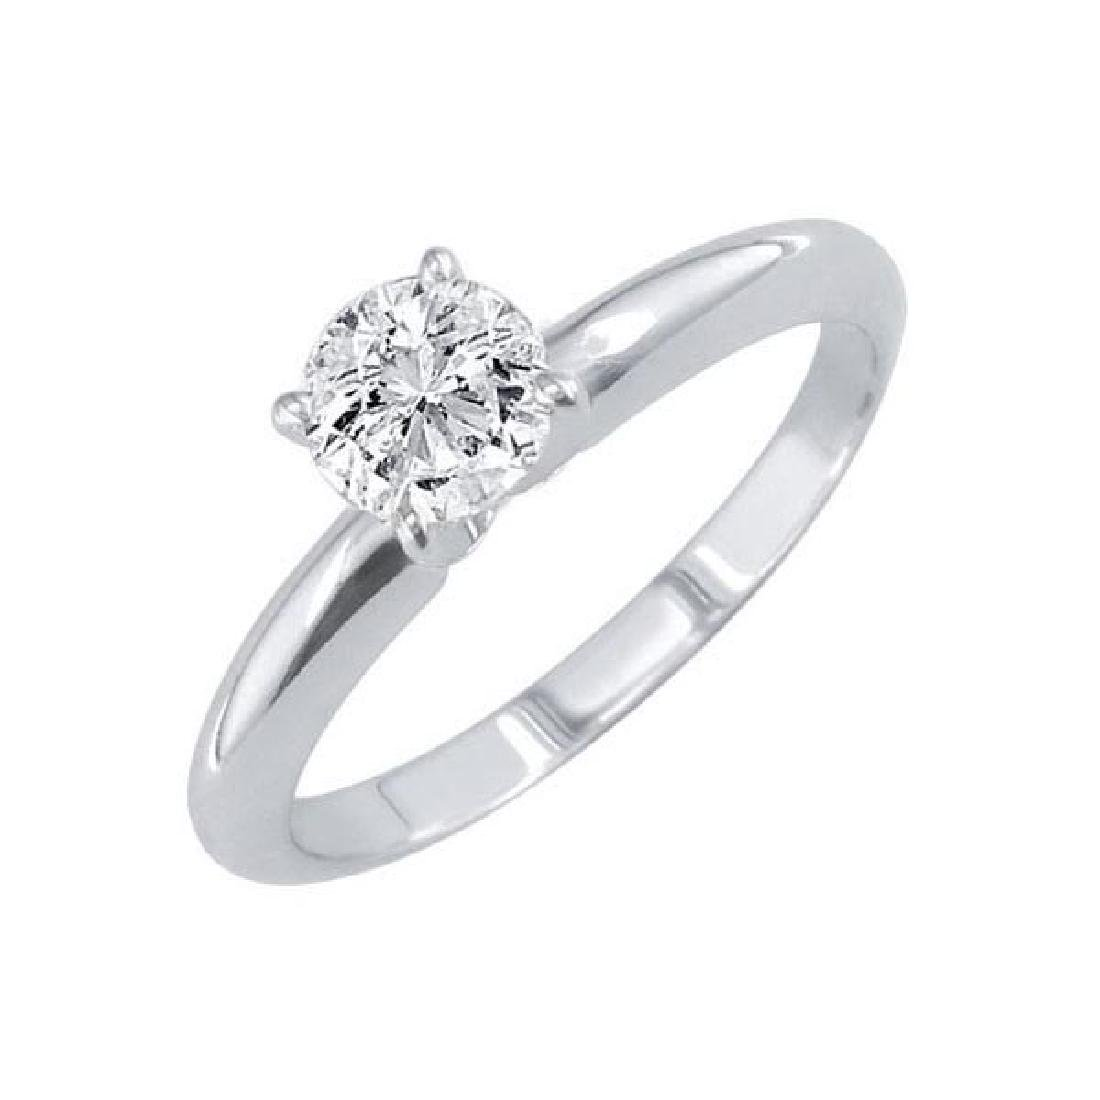 Certified 1.14 CTW Round Diamond Solitaire 14k Ring D/S